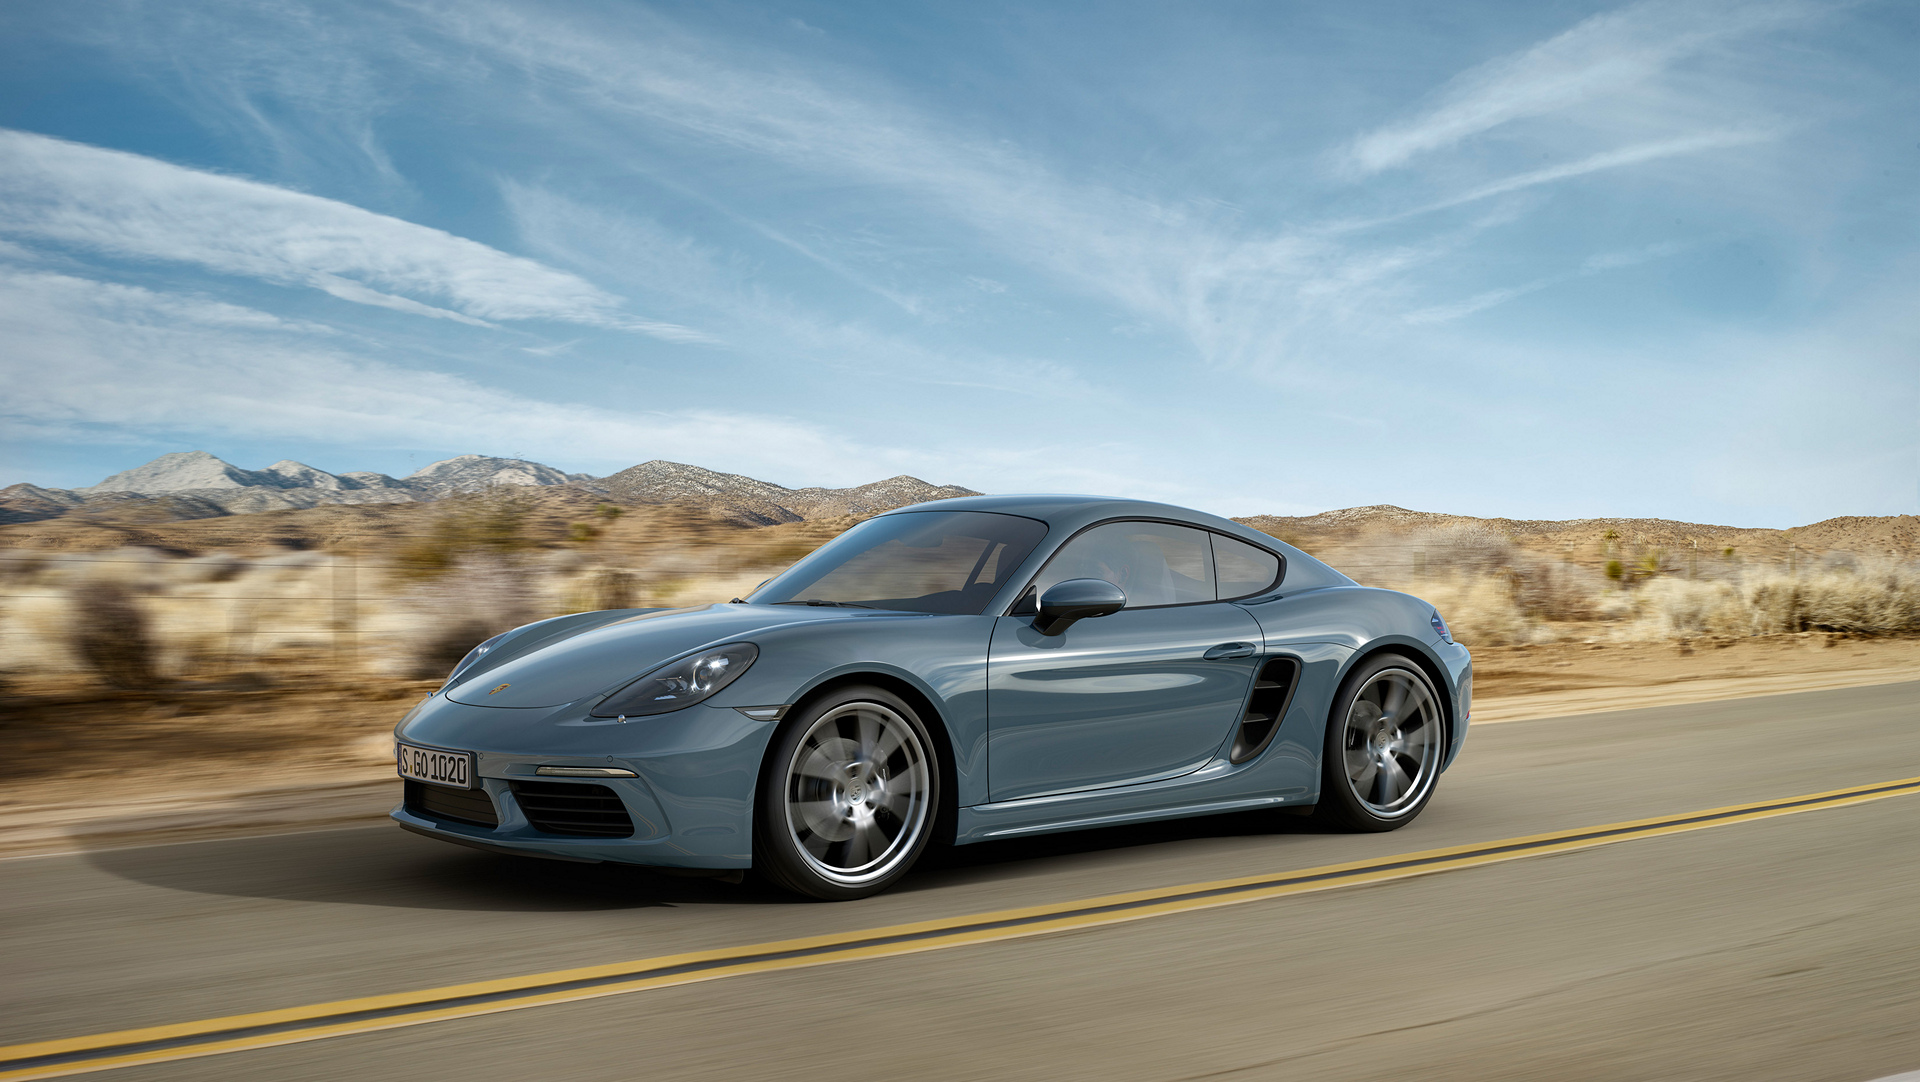 porsche 918 tail lights with Poised For Precision The New 2017 Porsche 718 Cayman on Chevy Volt Engine Set besides Porsche 718 Cayman Porsche 718 Boxster India as well Ferrari Value Guide as well Single product together with T50156.